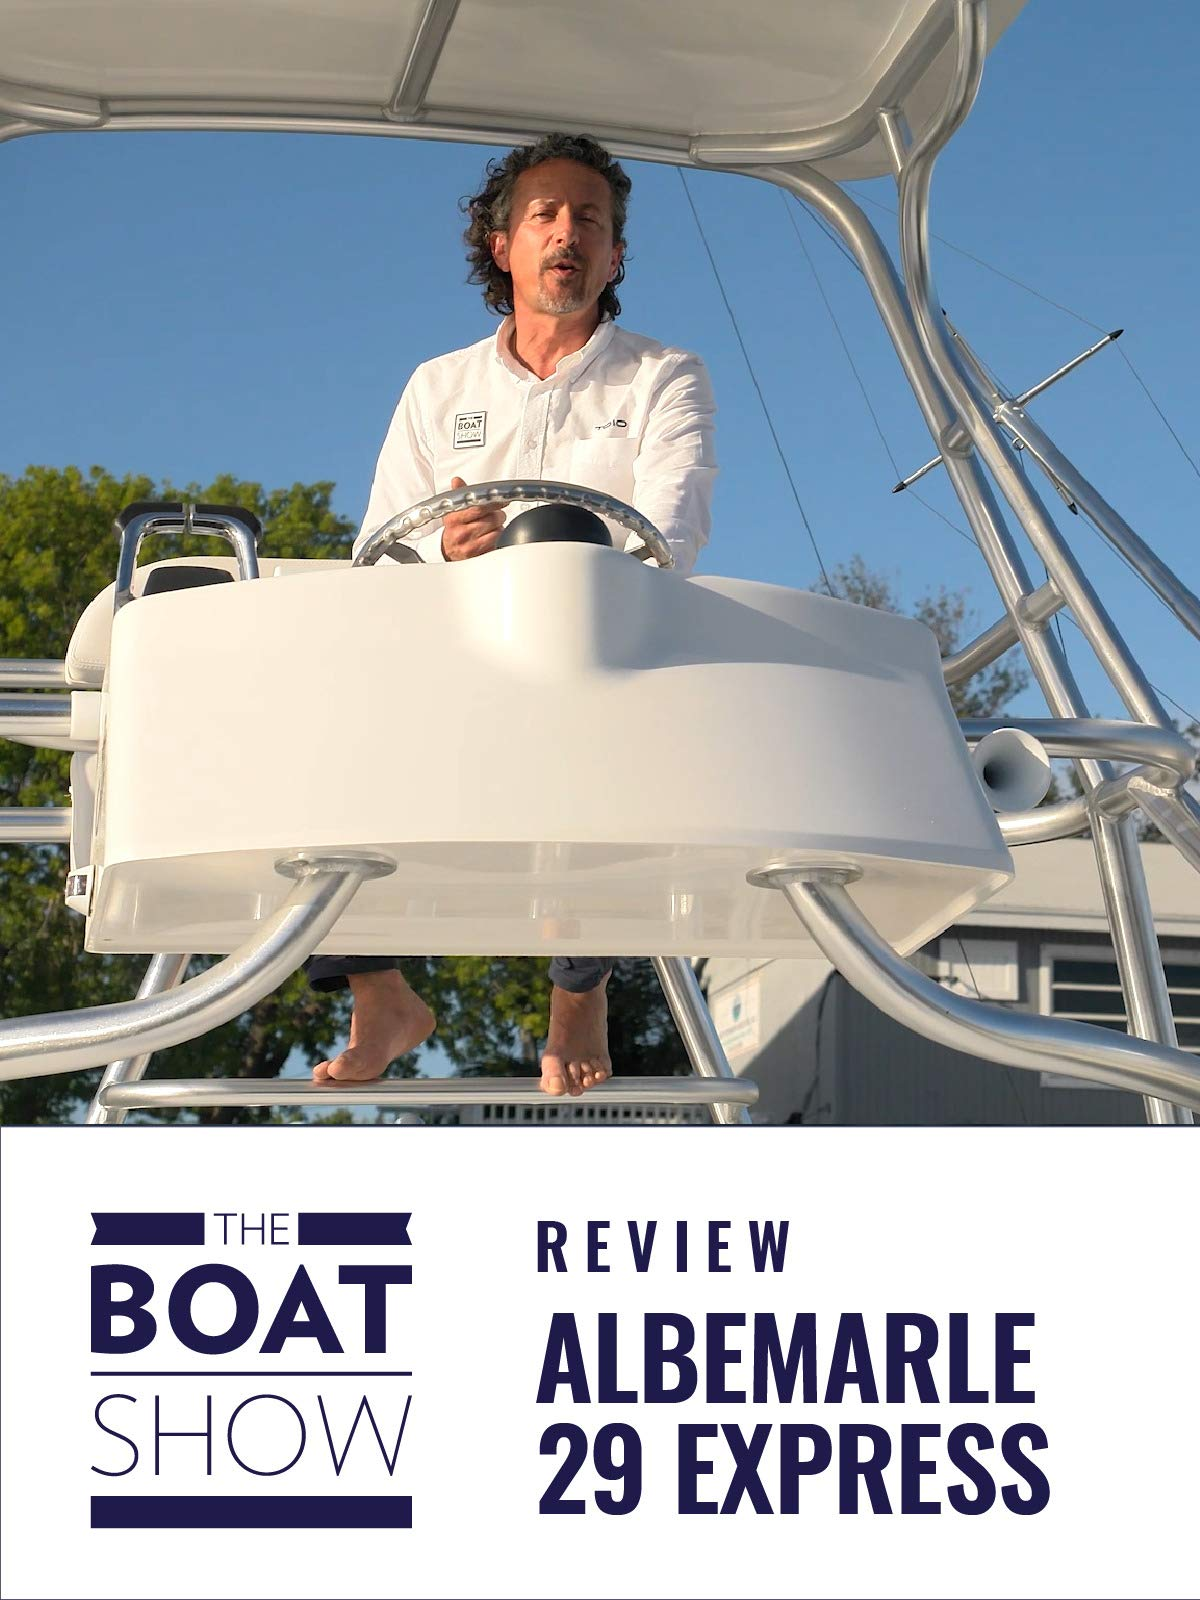 Albemarle 29 Express - The Boat Show on Amazon Prime Instant Video UK